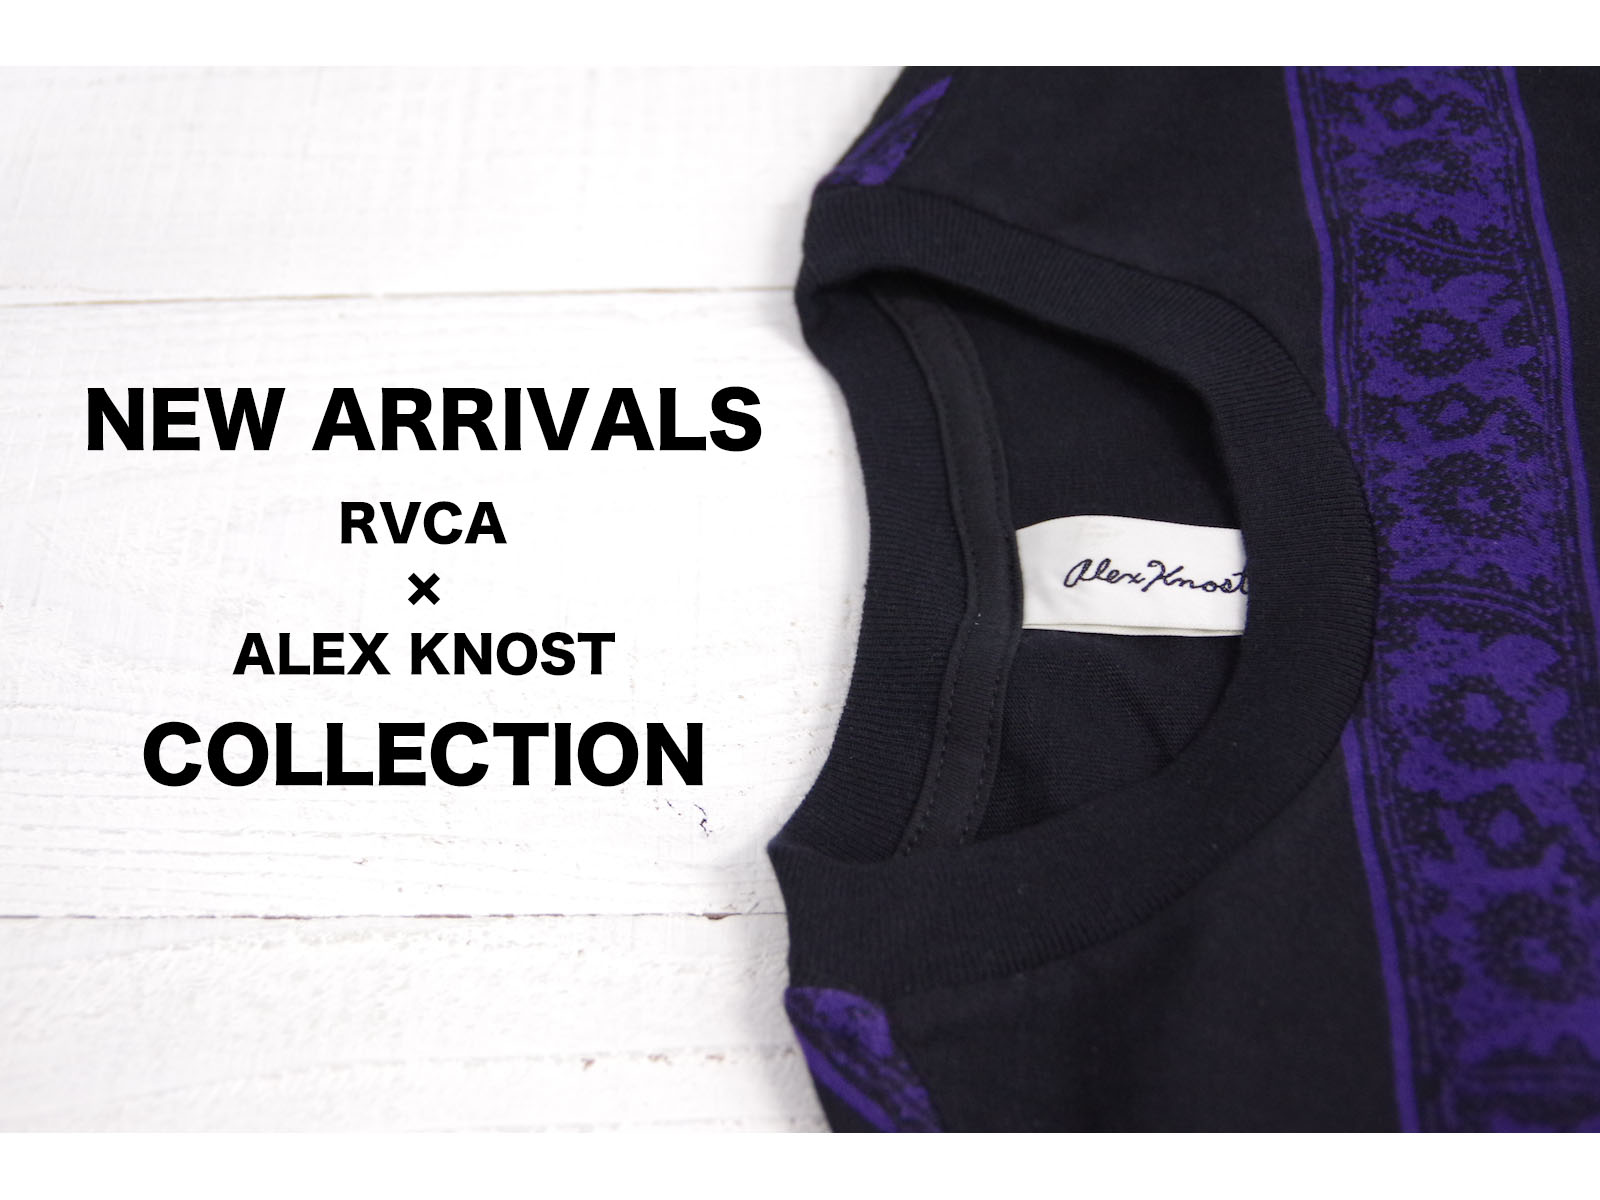 NEW ARRIVALS – RVCA × ALEX KNOST COLLECTION